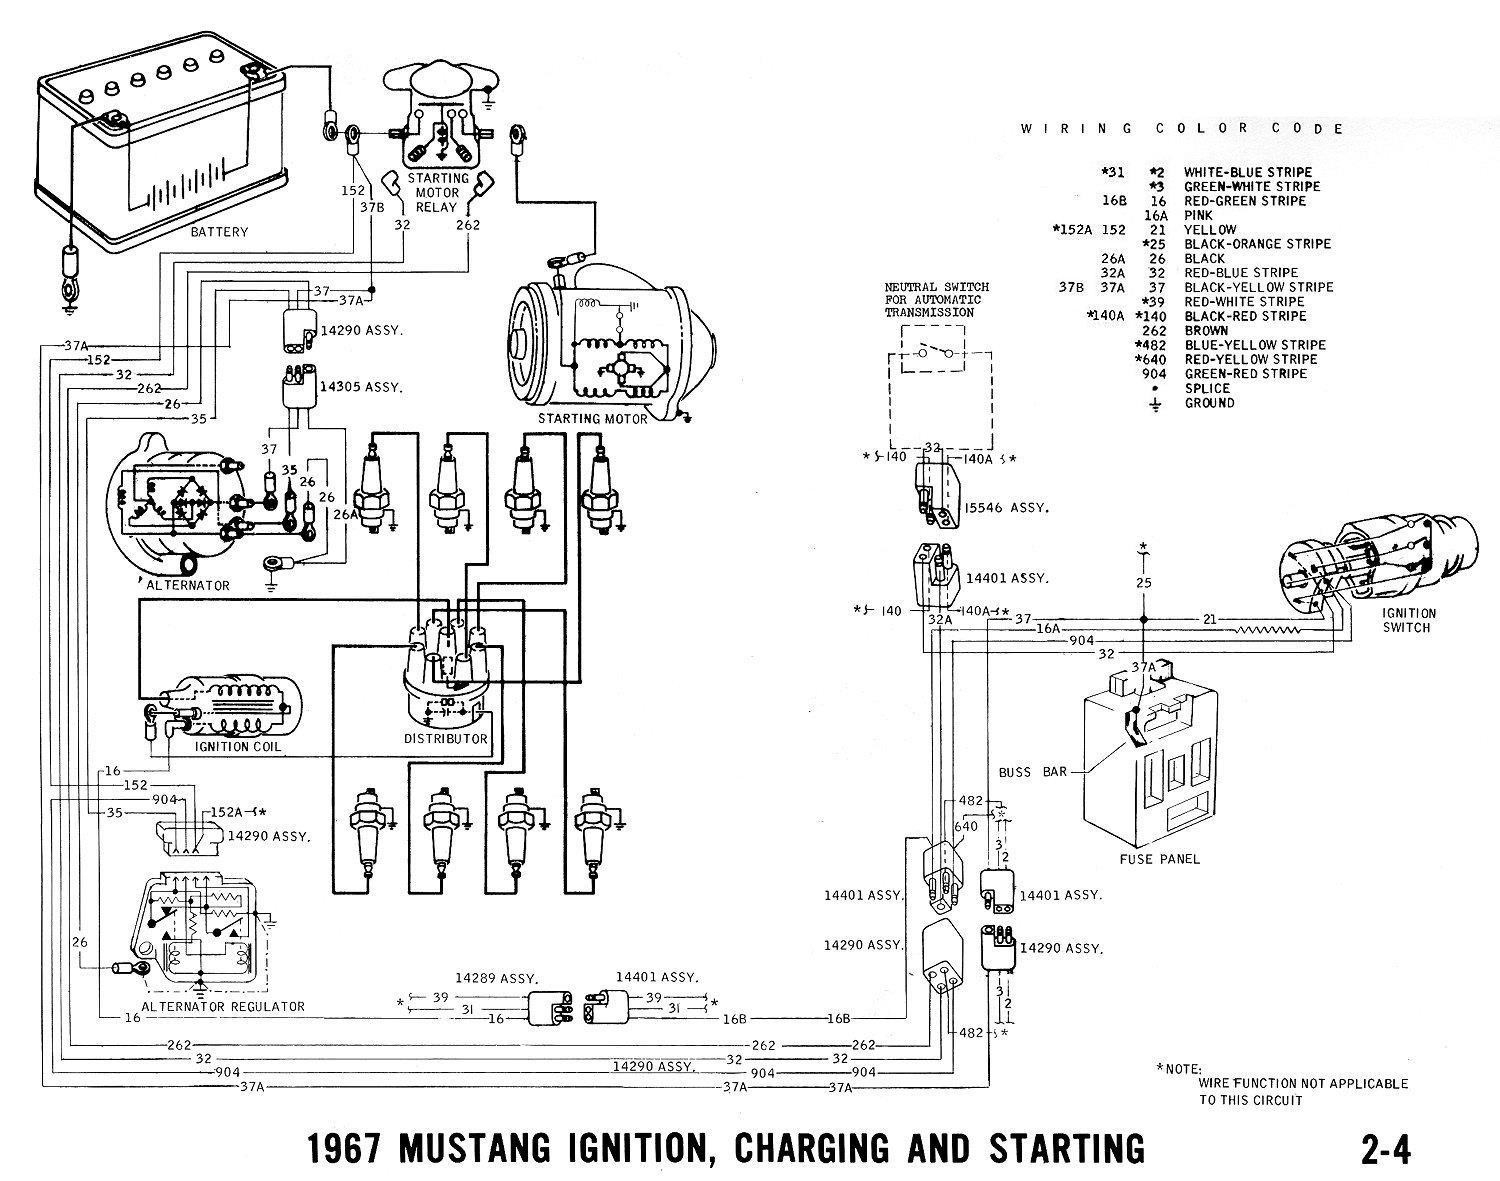 1967 mustang alternator wiring diagram Download-Wiring 1967 Ford Mustang Alternator Diagrams Starting Pleasing Diagram 5-m